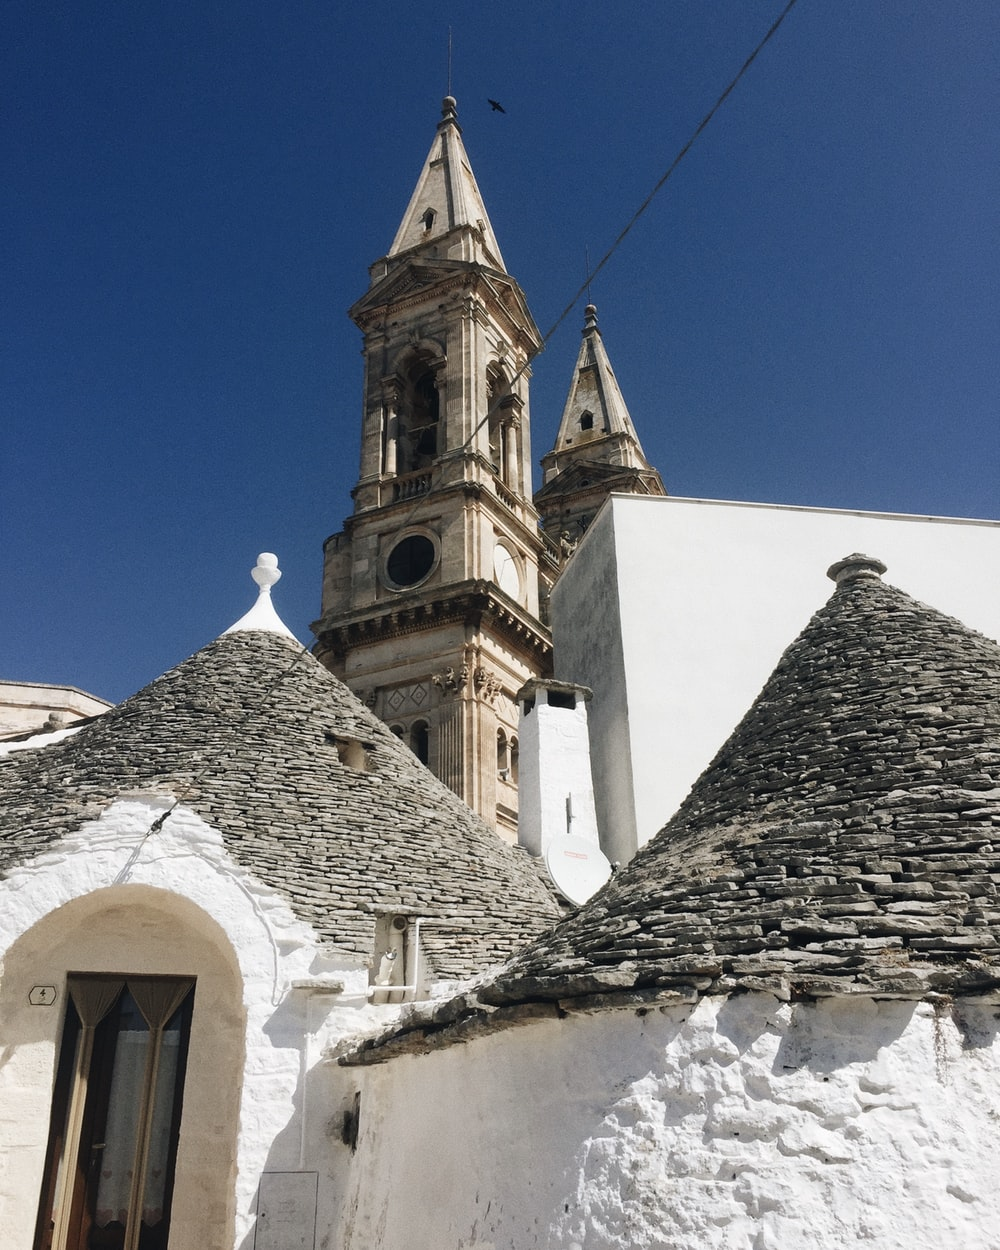 white and brown concrete church under blue sky during daytime